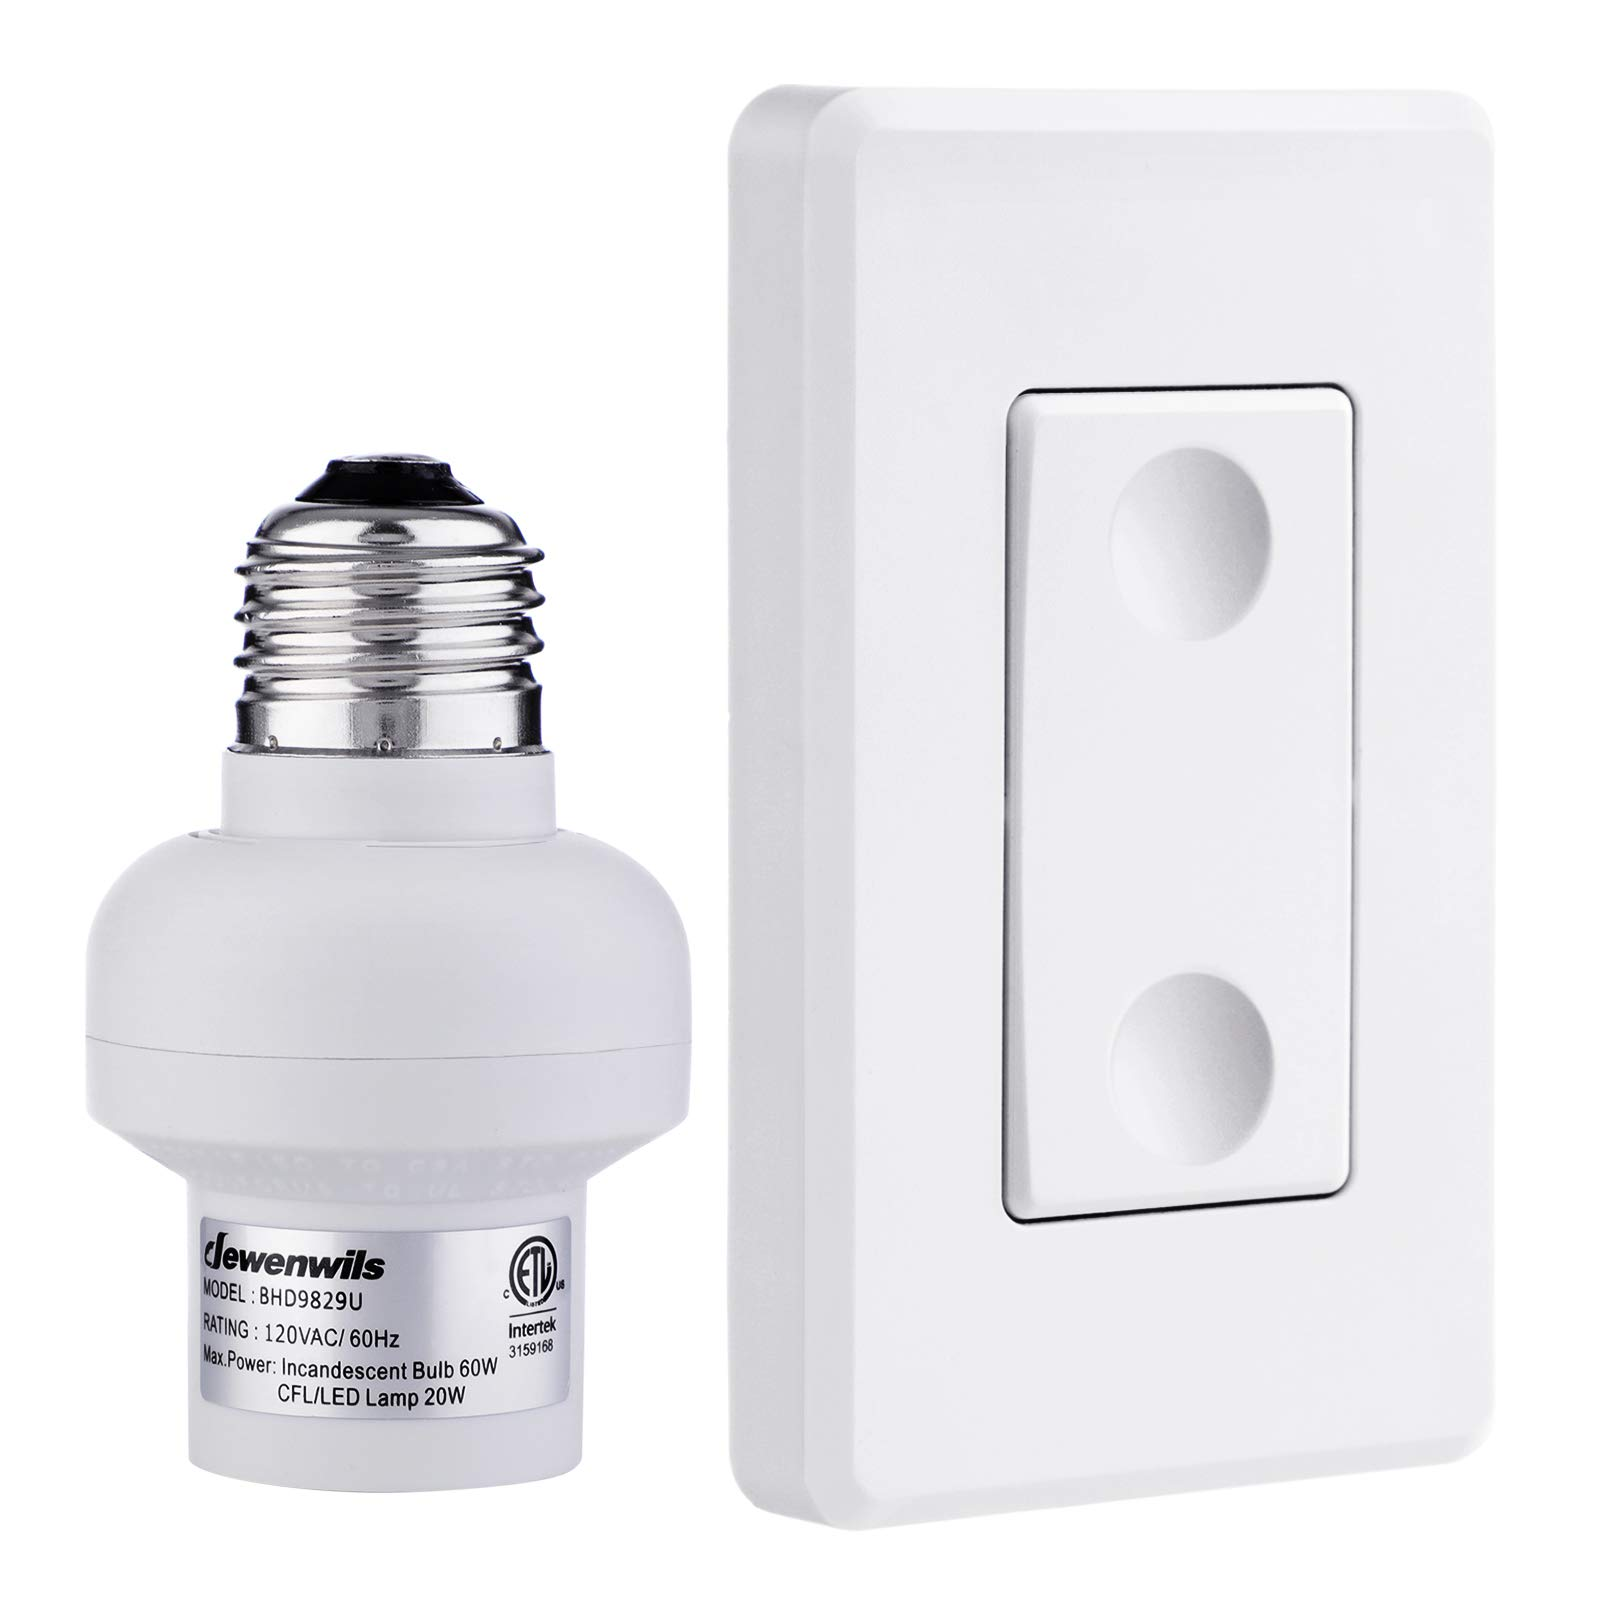 DEWENWILS Remote Control Light Lamp Socket E26 E27 Bulb Base Adapter, No Wiring, Wall Mounted Wireless Controlled Ceiling Light Switch Fixture, Expandable, ETL Listed, White